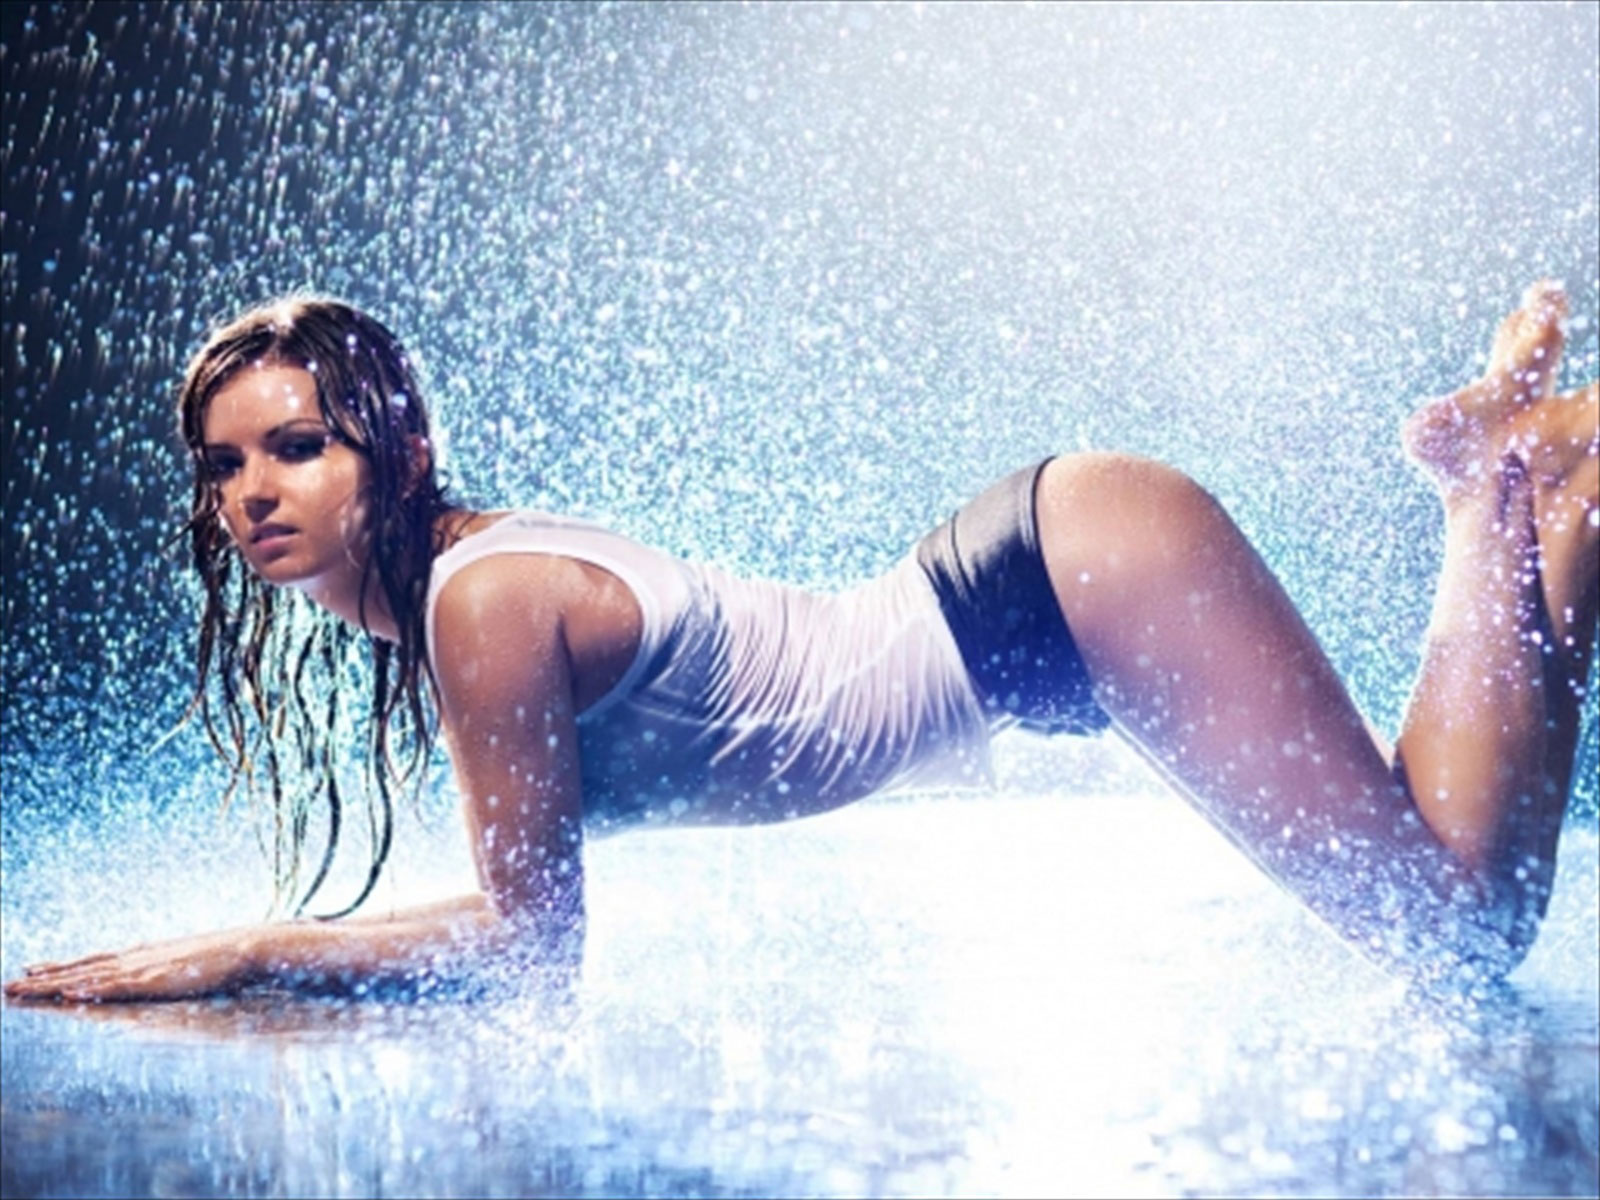 Hot Model in Rain Wallpaper